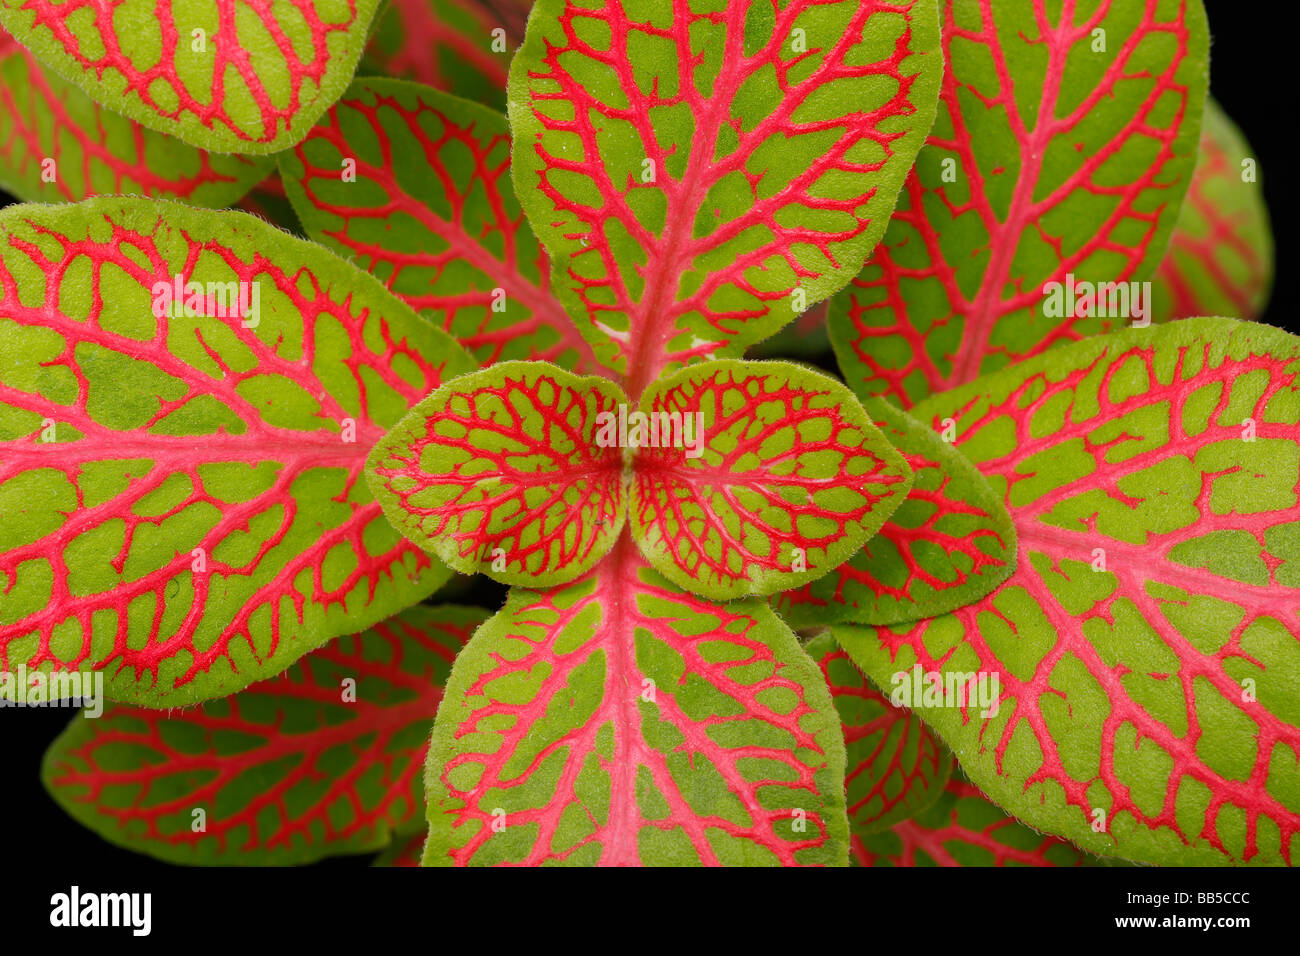 Fittonia leaf detail showing red and green patterning - Stock Image